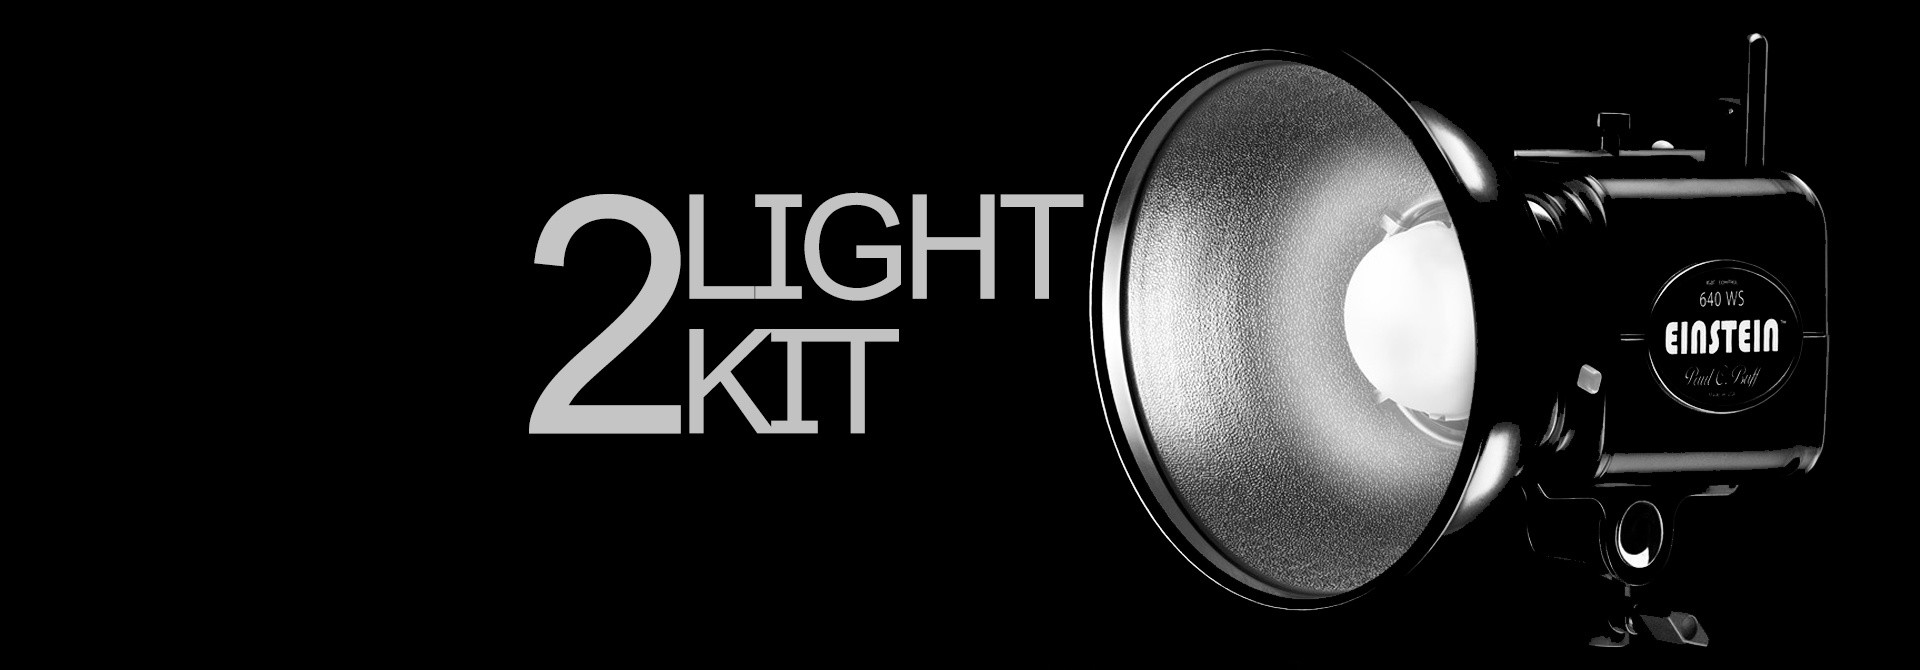 TWO LIGHT KIT | WITH PAUL C. BUFF